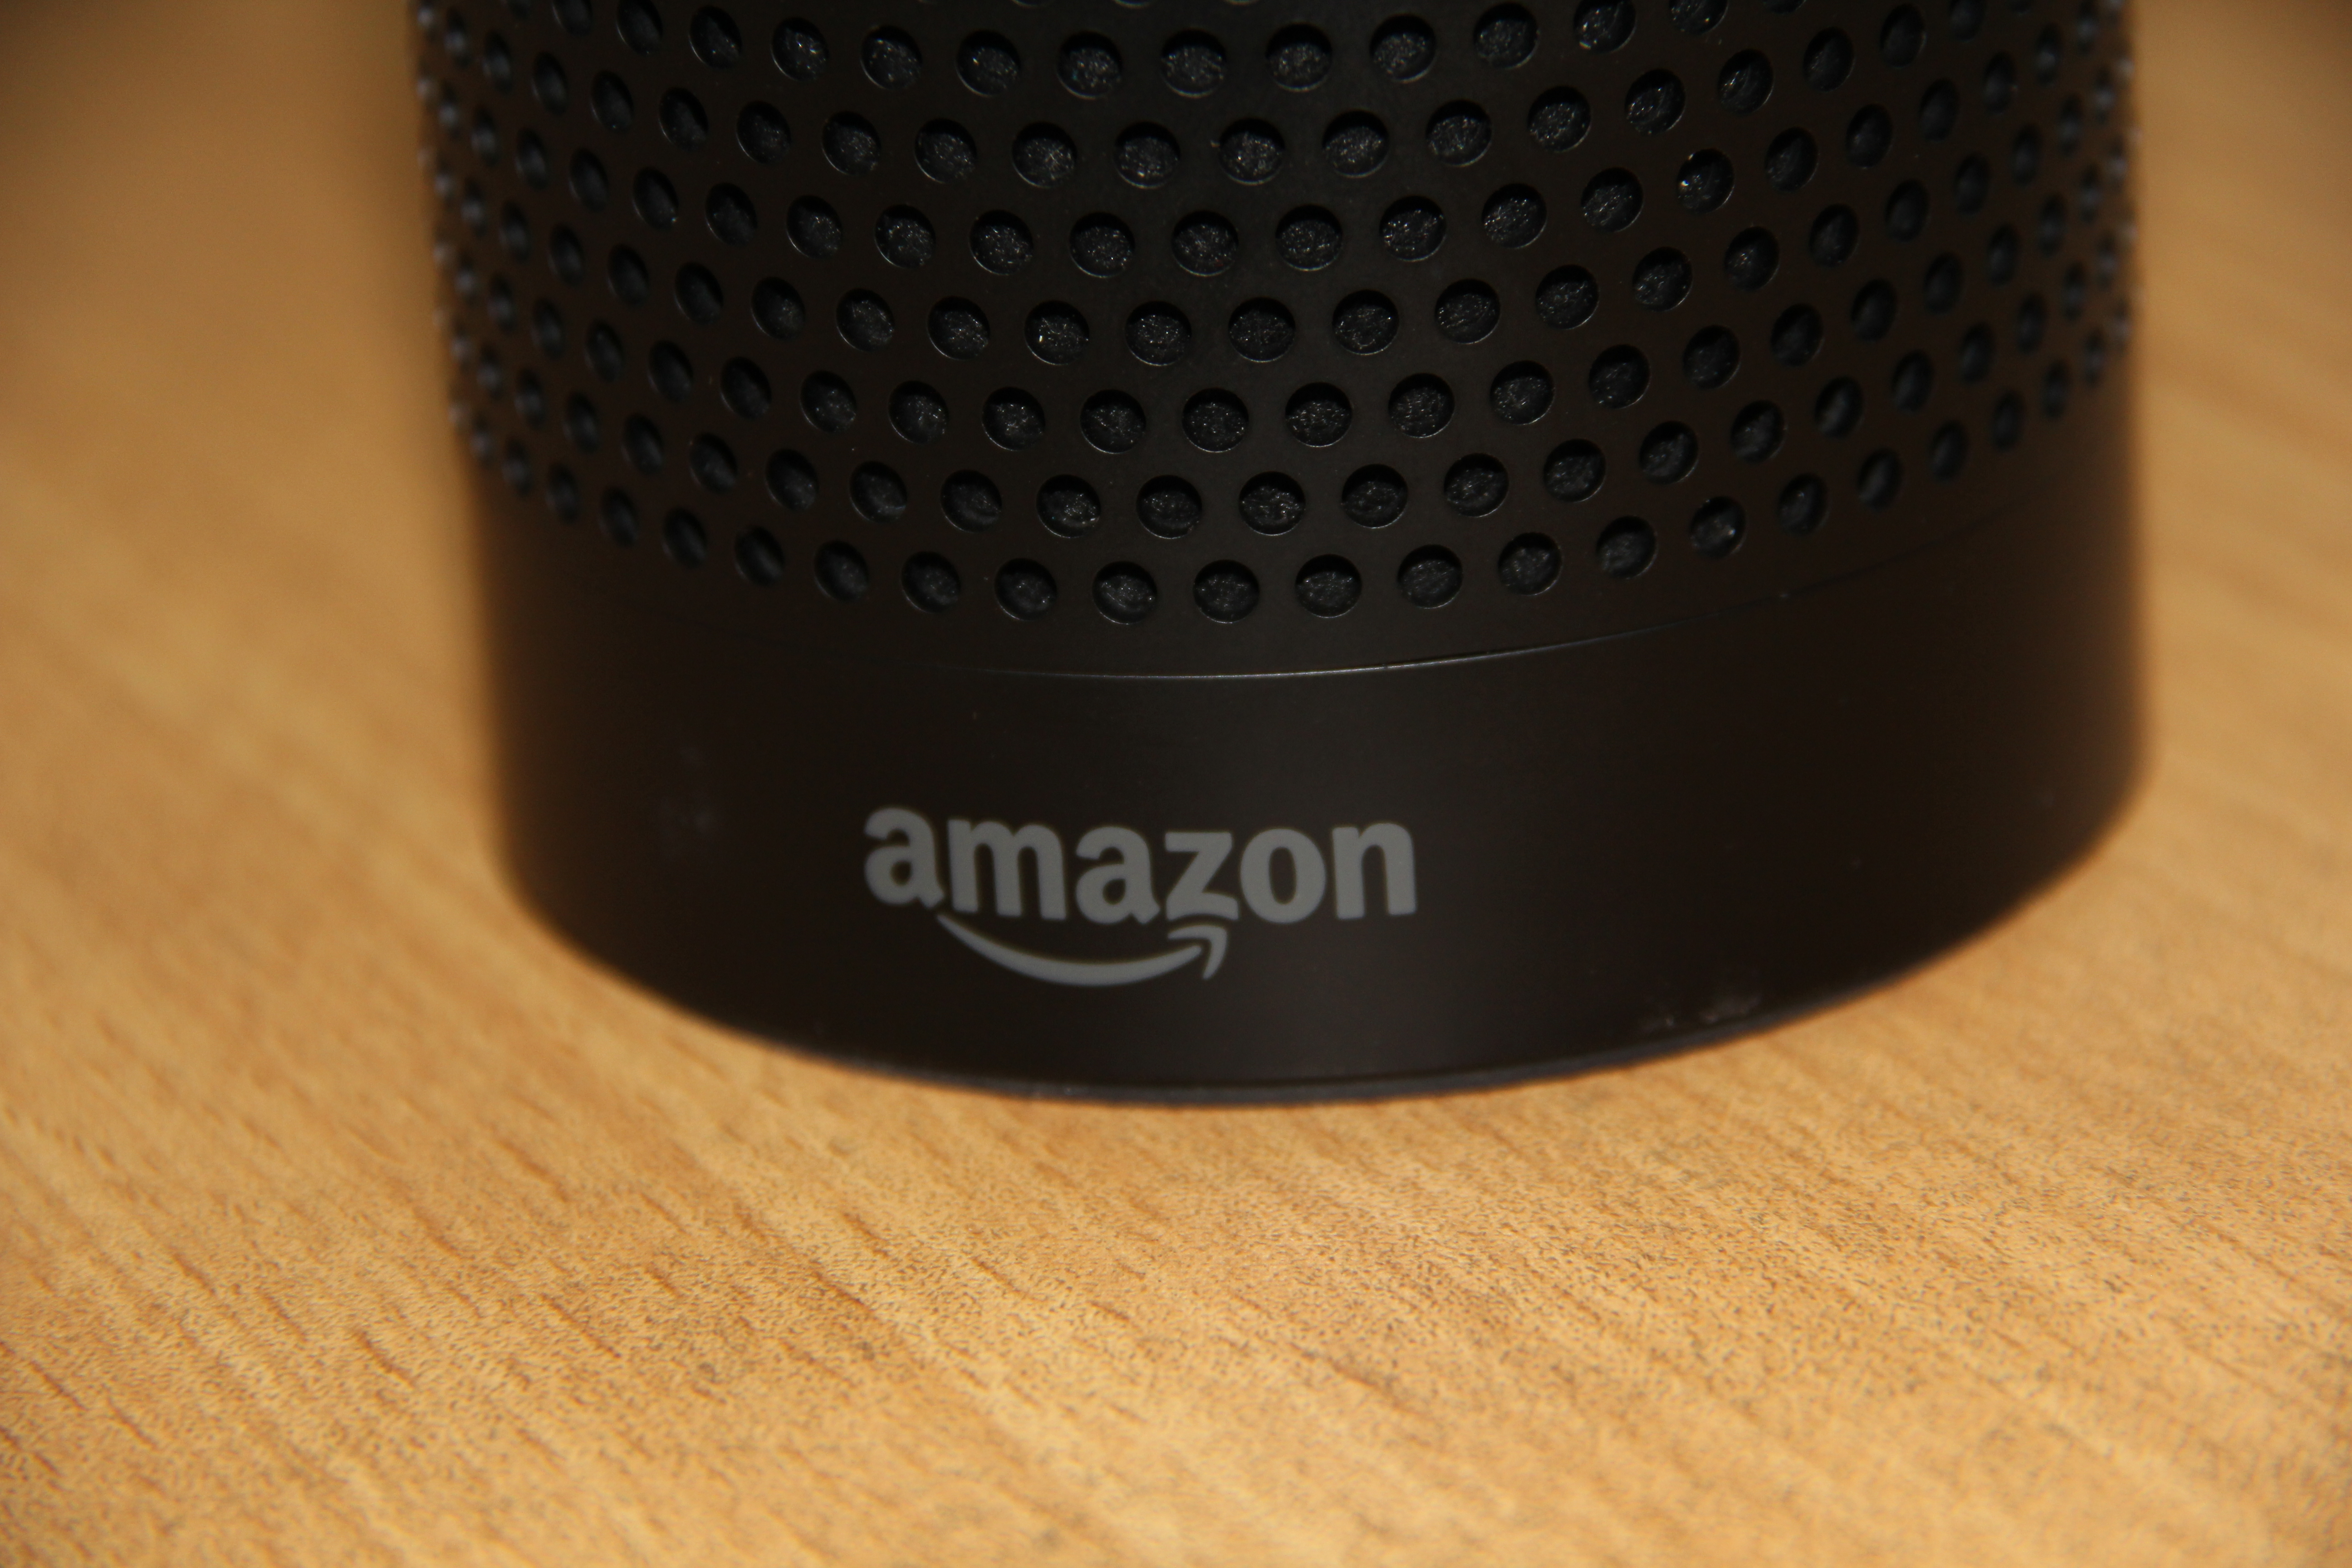 Lawsuits claim Amazon's Alexa recording children without consent